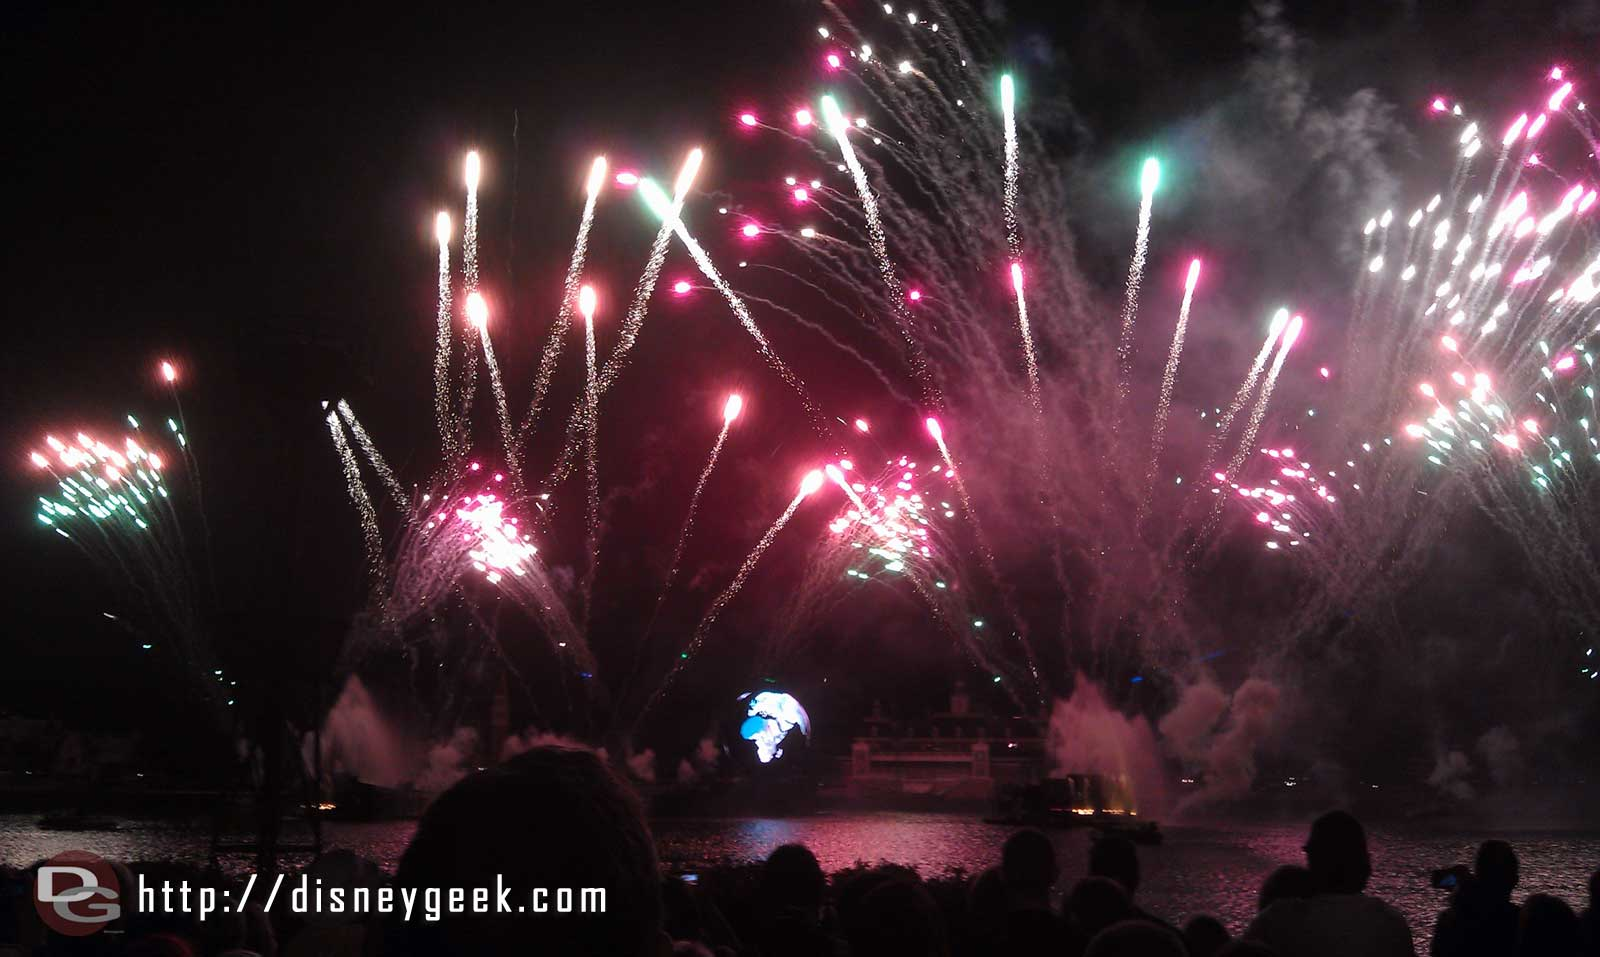 Illuminations to wrap up the day